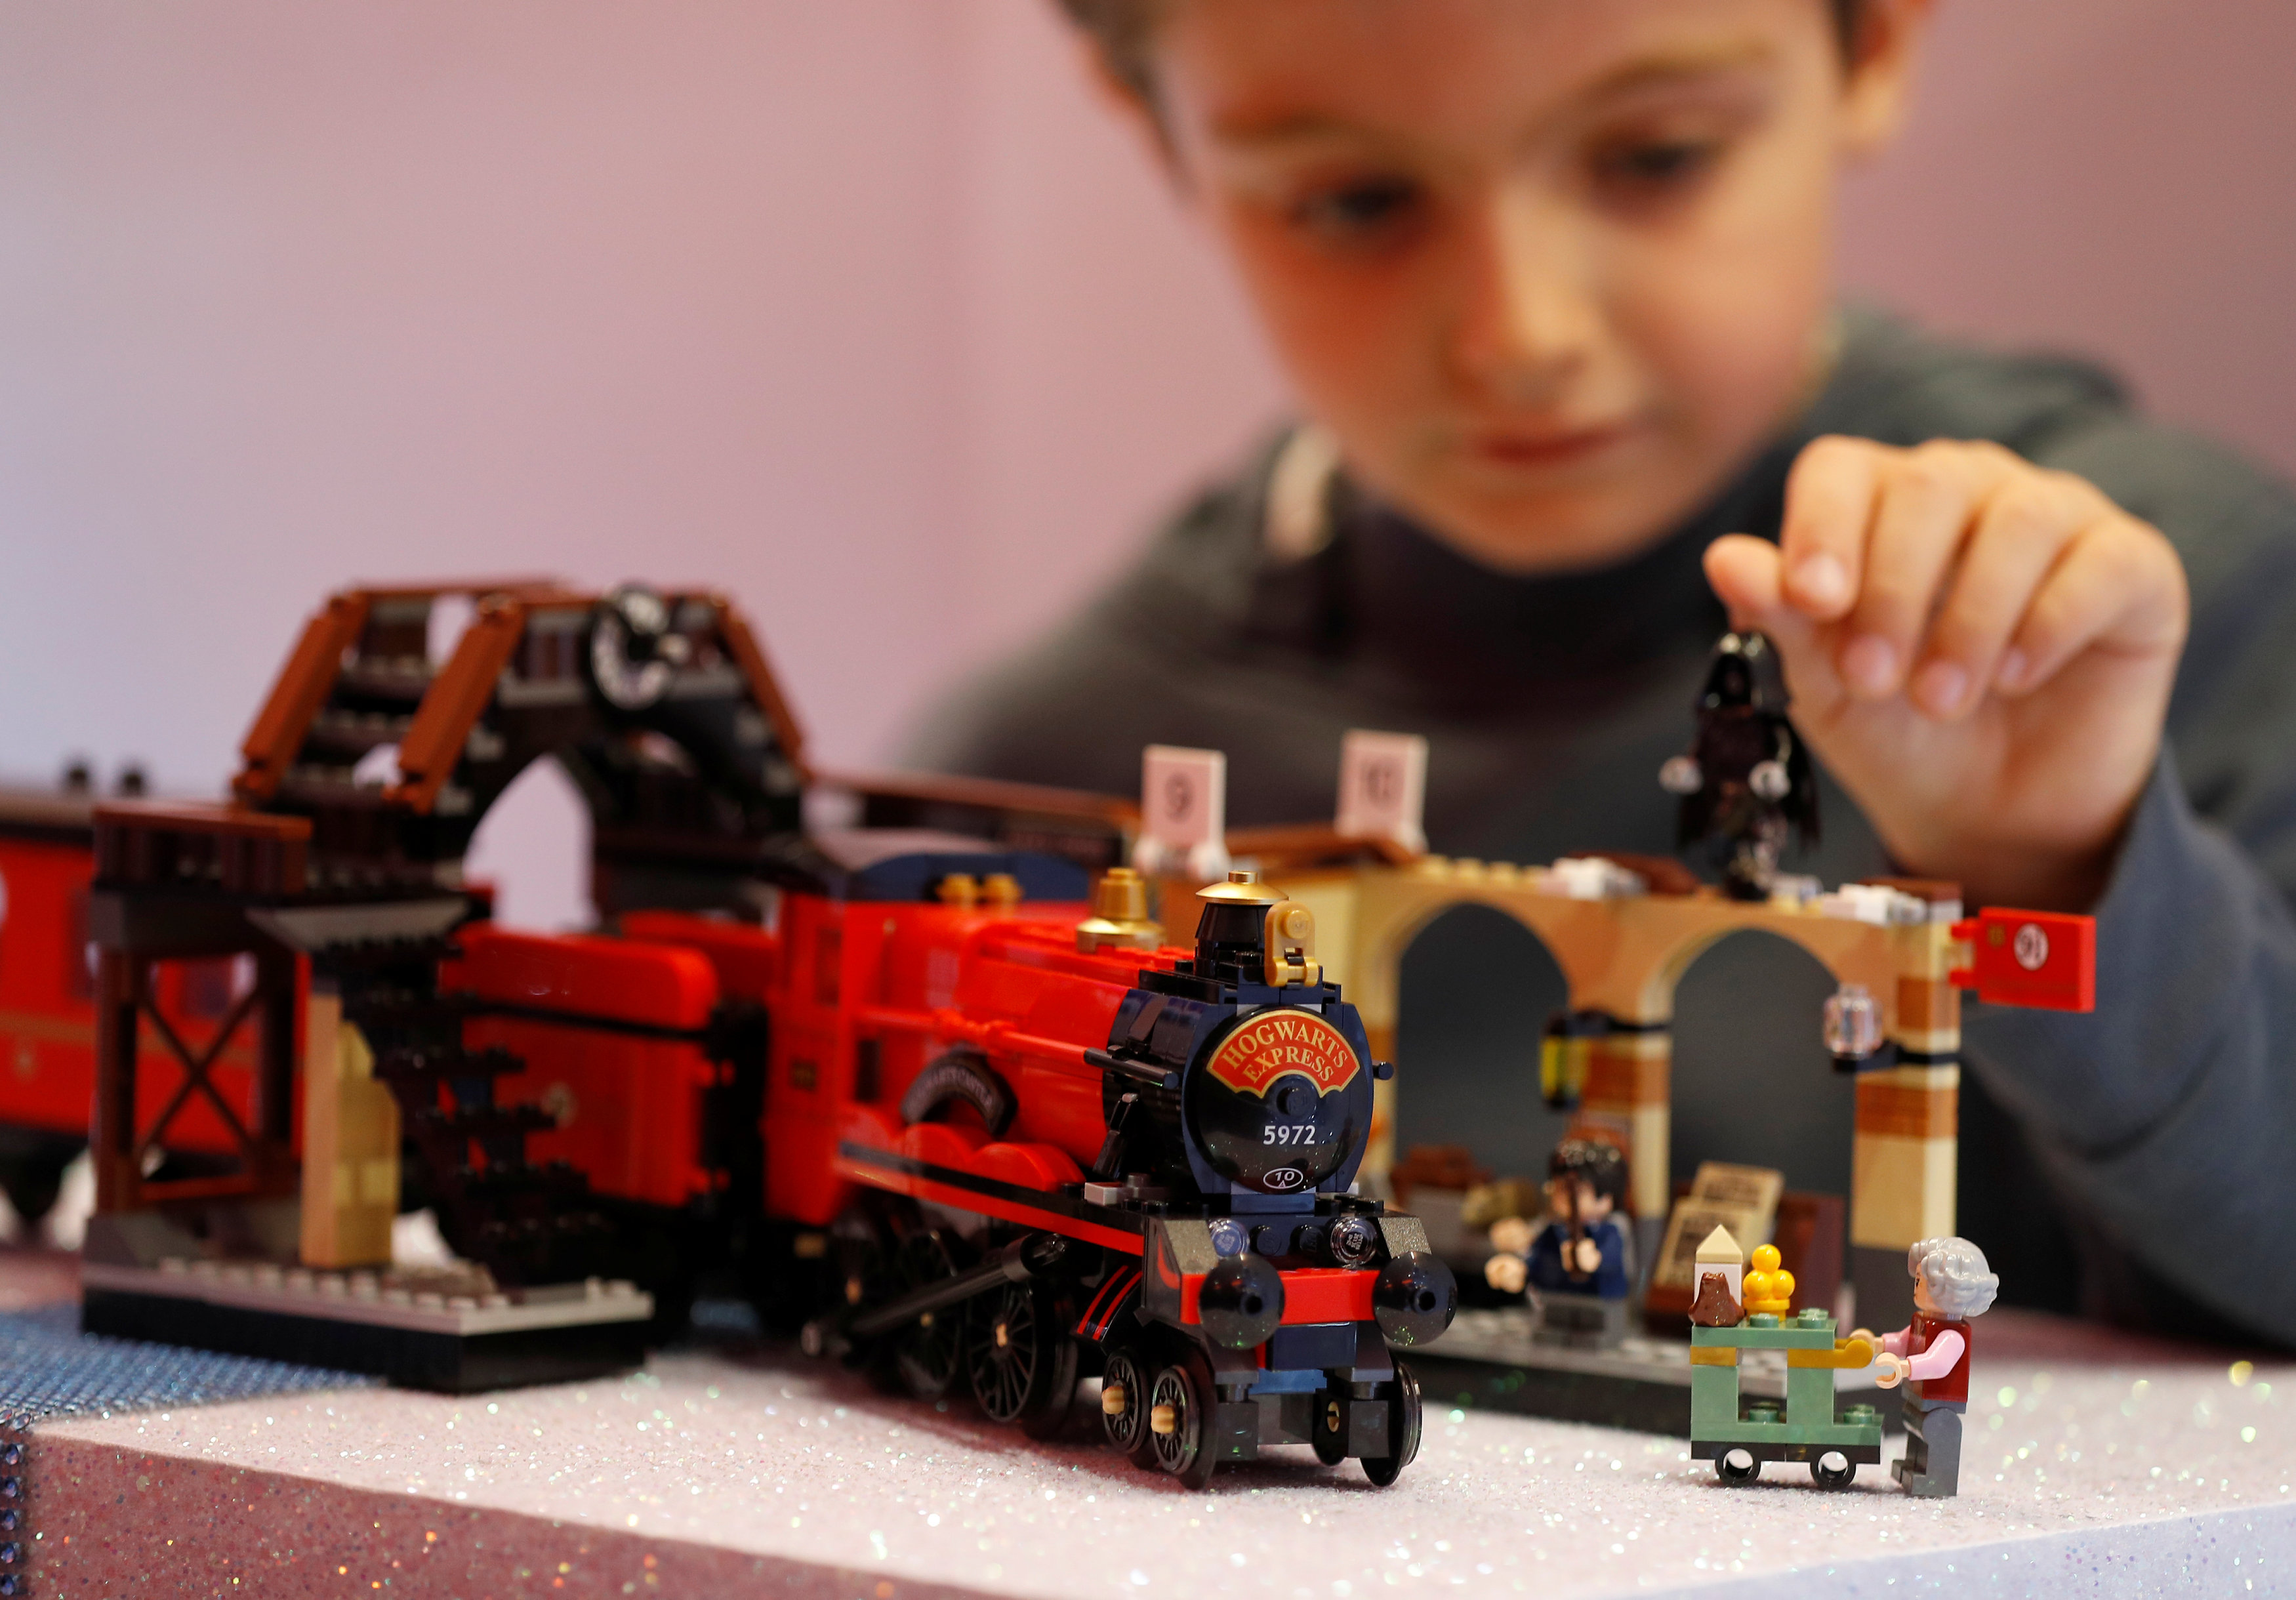 Ted Wadsworth-Hill, aged 8, plays with a Lego Harry Potter Hogwarts Express train, at the launch of Hamleys top Christmas toys in London